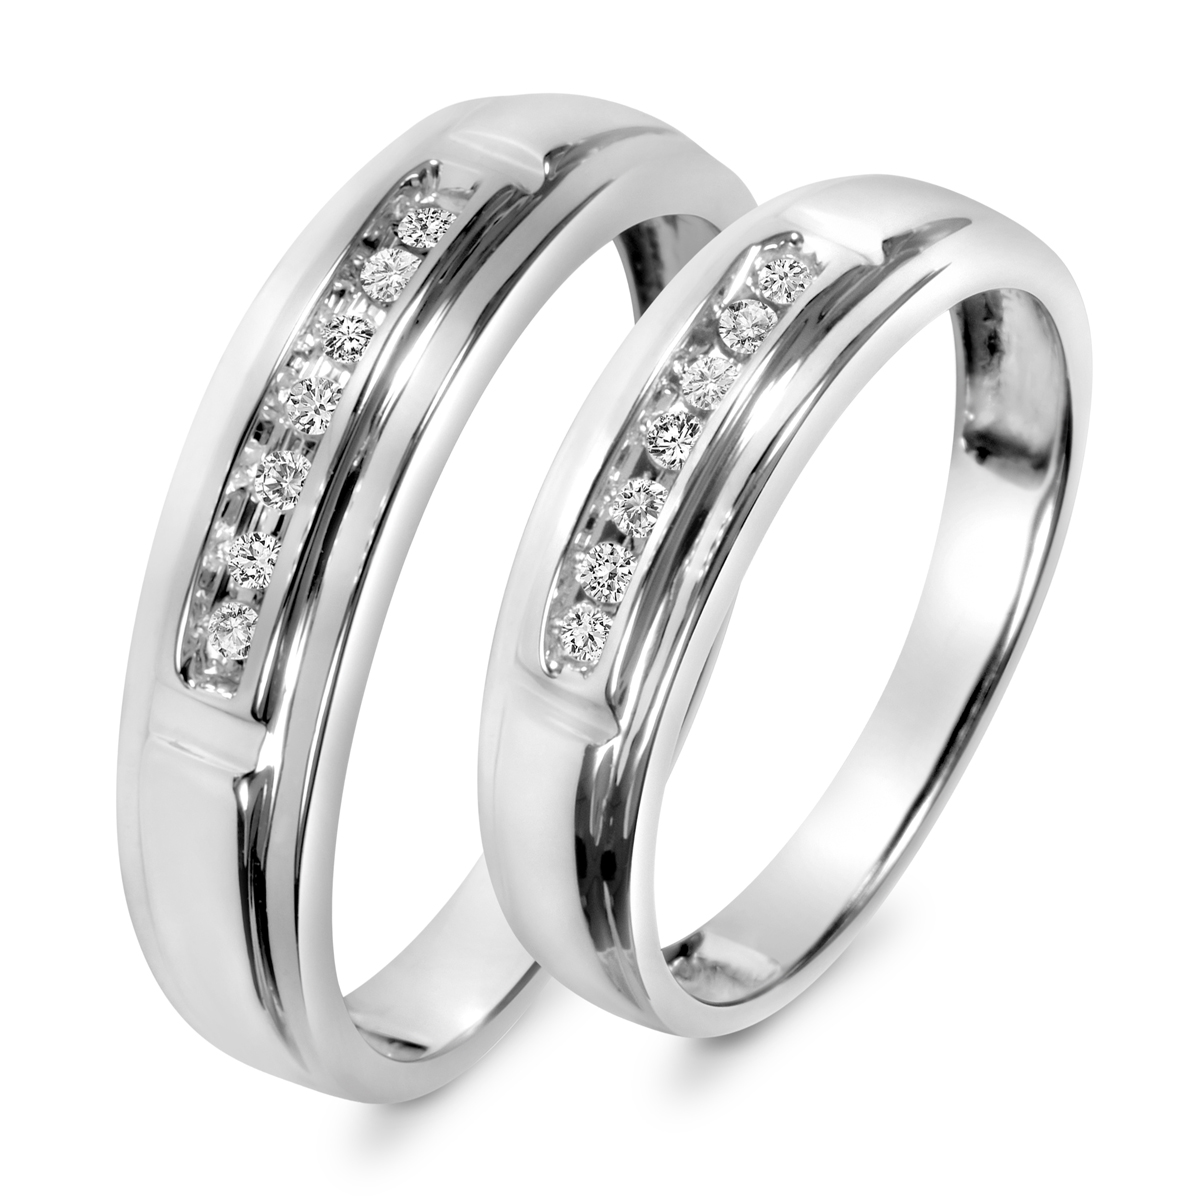 wedding rings matching edge wg carat tb scalled bd bnd halo ring b prd engagement for